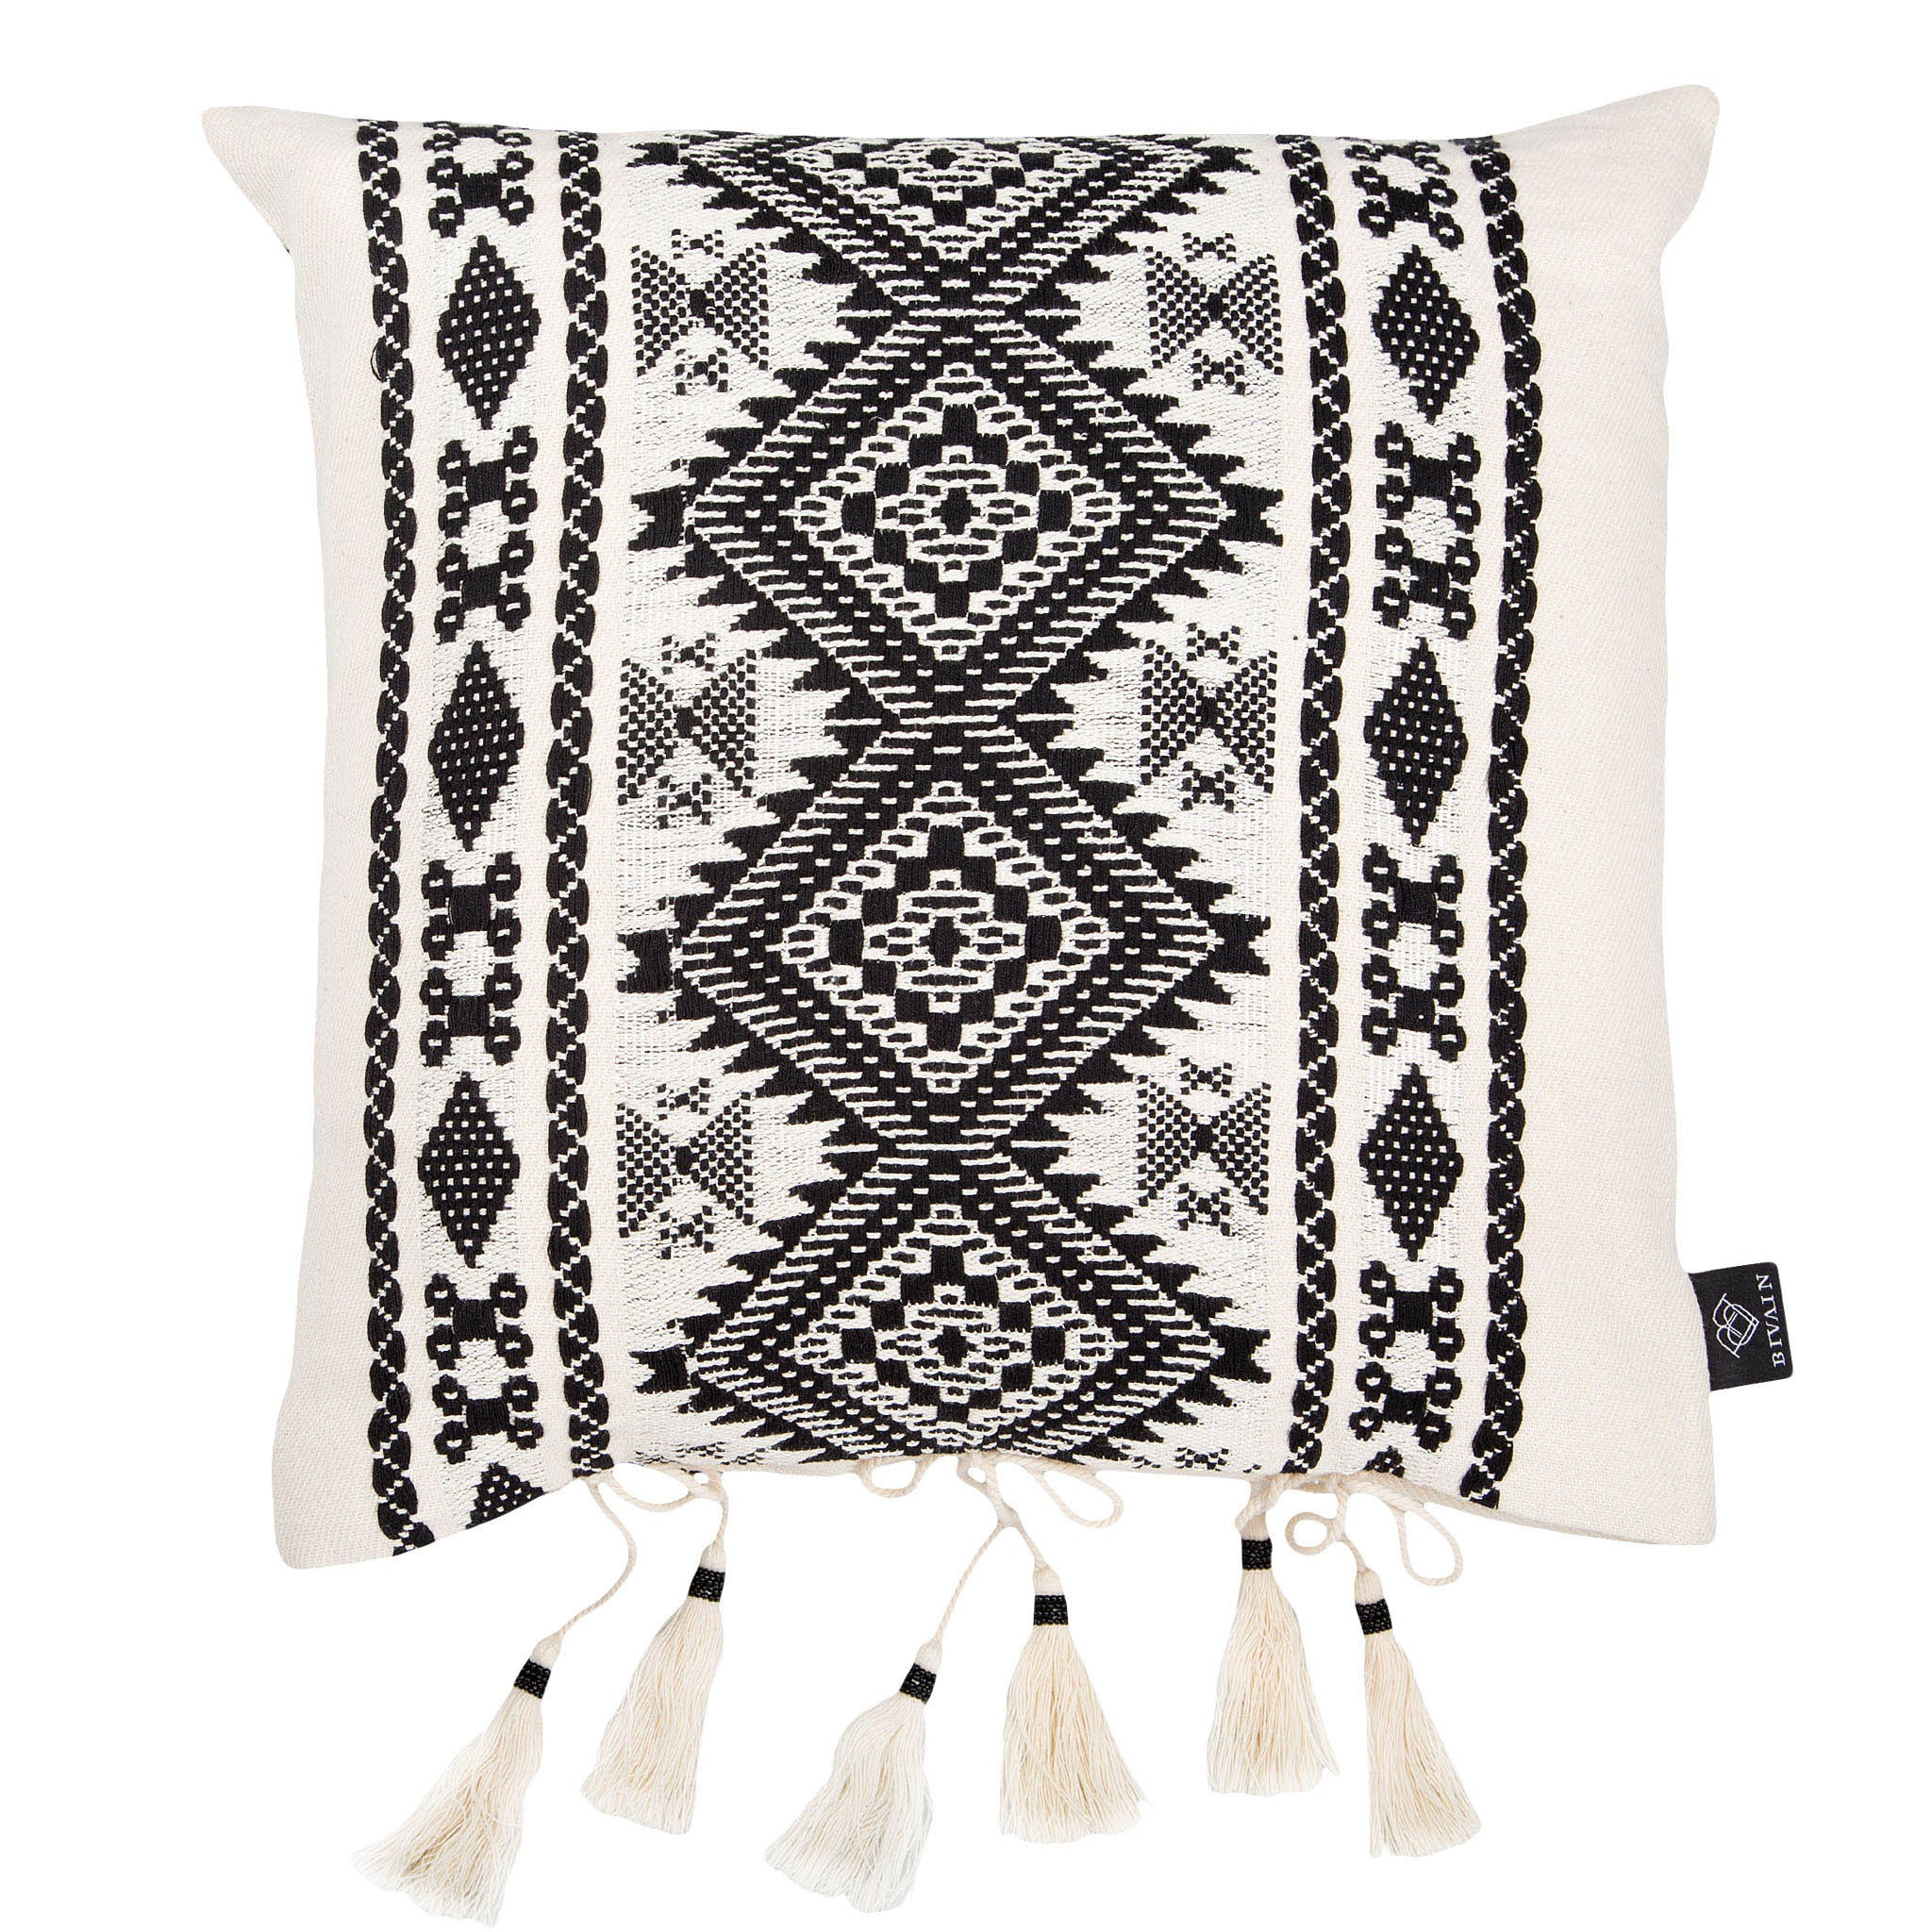 Bedouin-style black & white tasselled cotton cushion - Bivain - 1